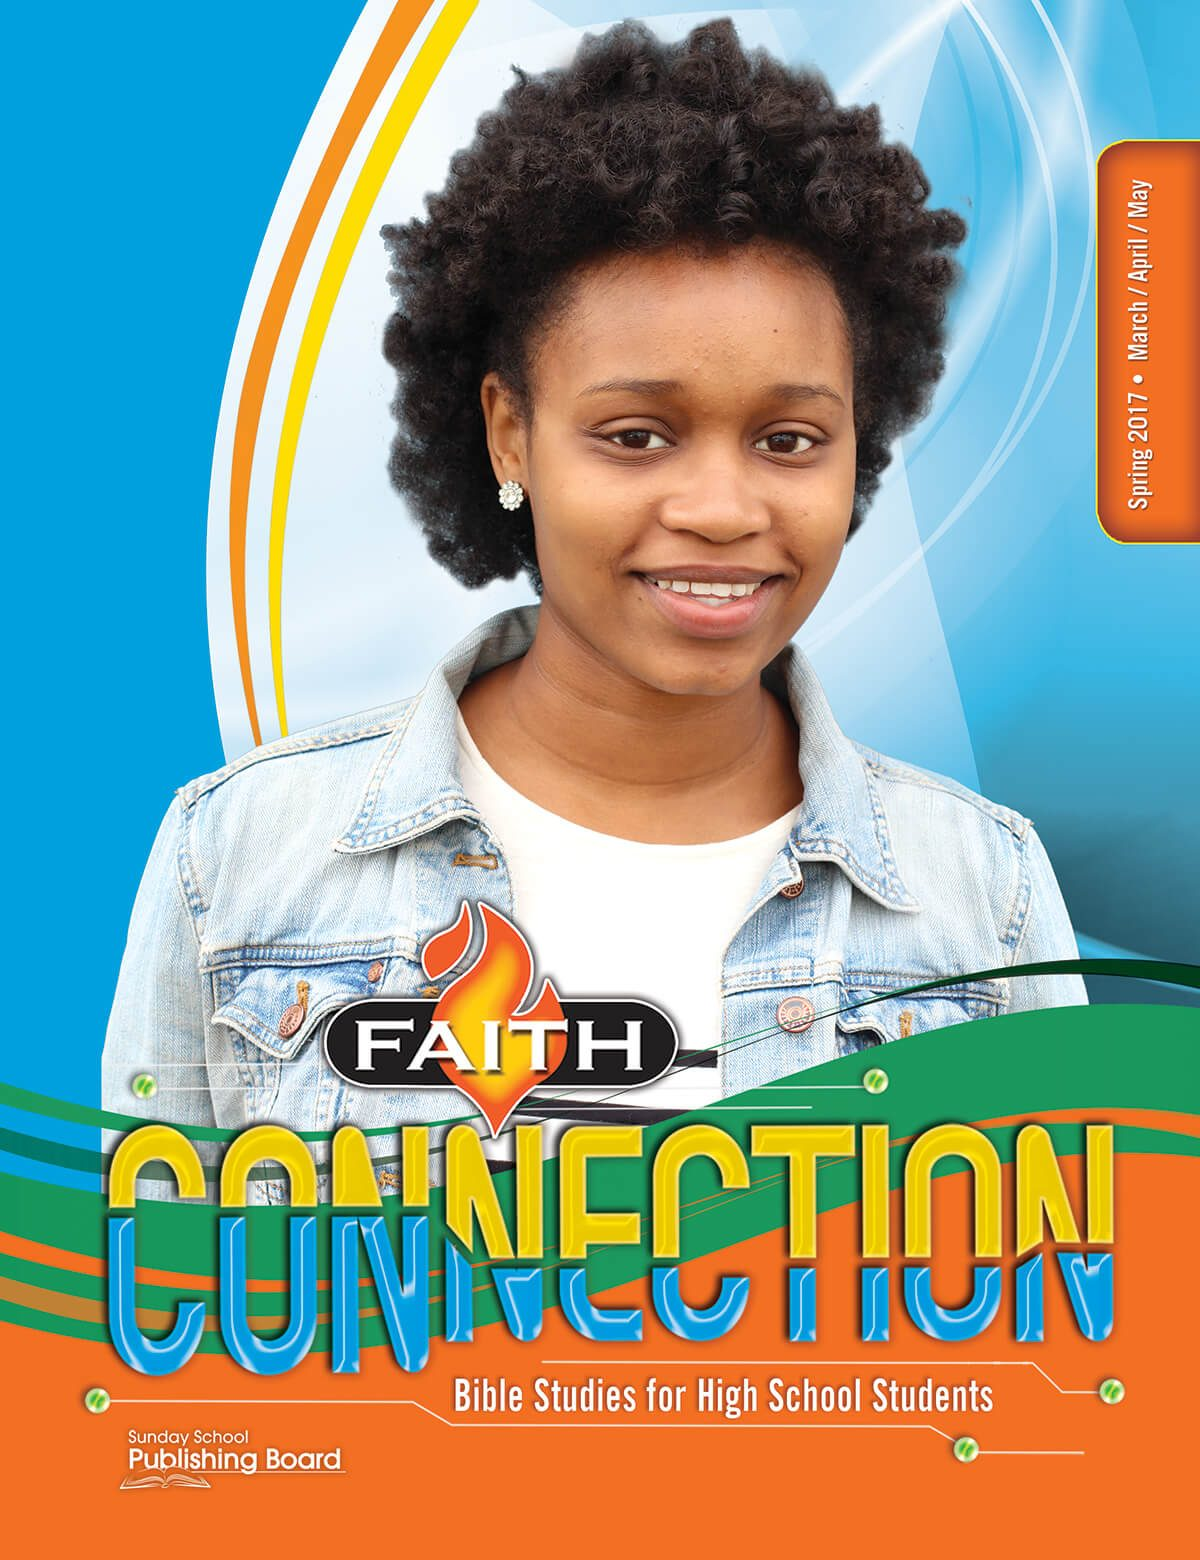 Faith Connection Bible Studies for High School Students (Spring 2017) – Digital Edition